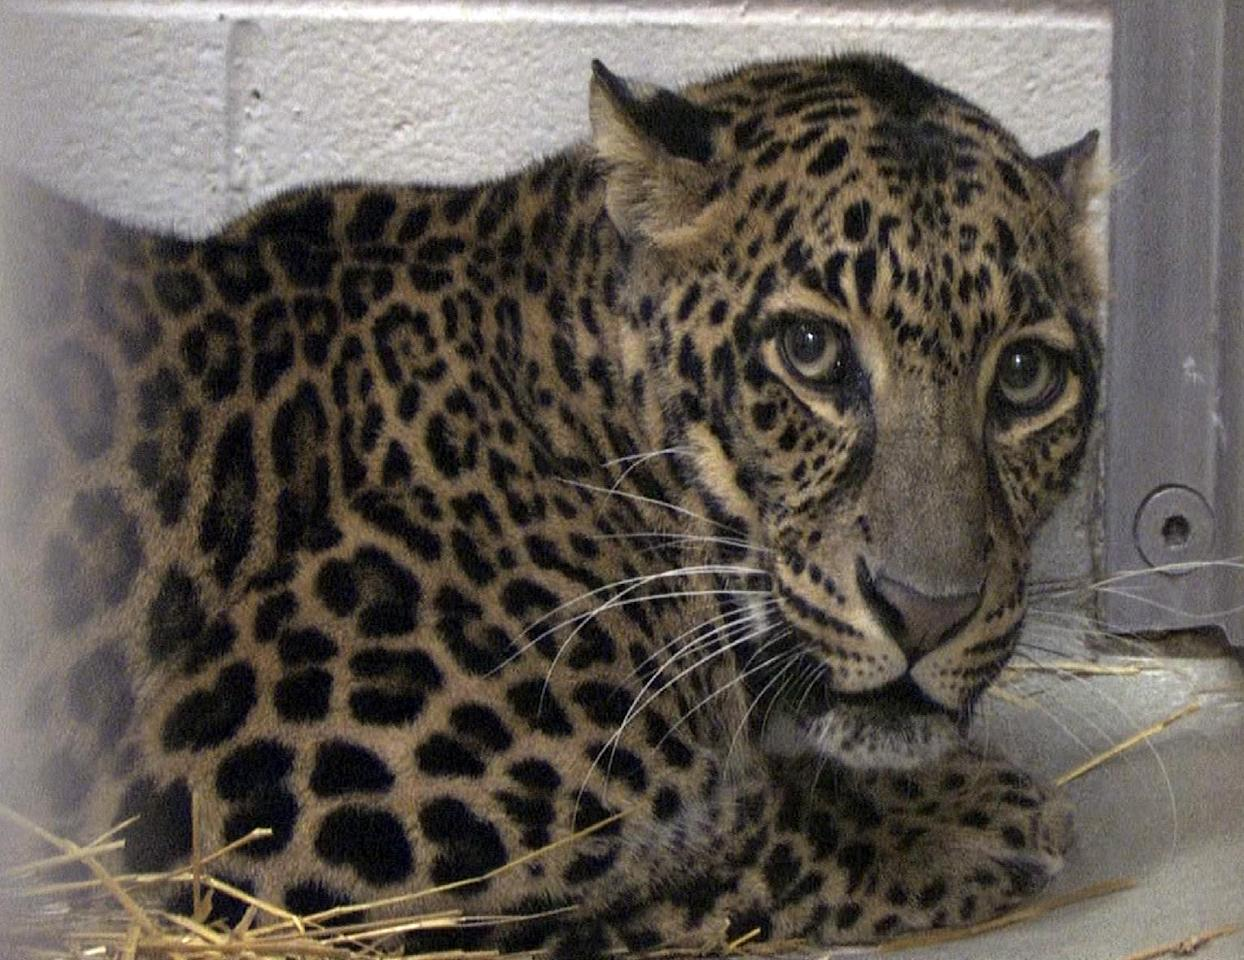 This photo provided by the Columbus Zoo and Aquarium shows one of three leopards that were captured by authorities Wednesday, a day after their owner released dozens of wild animals and then killed himself near Zanesville, Ohio. Sheriff's deputies shot and killed 48 of the animals, including 18 rare Bengal tigers, 17 lions, six black bears, two grizzly bears, a baboon, a wolf and three mountain lions. Six of the released animals - three leopards, a bear and two monkeys - were captured and taken to the Columbus Zoo. (AP Photo/Columbus Zoo and Aquarium, Grahm S. Jones)